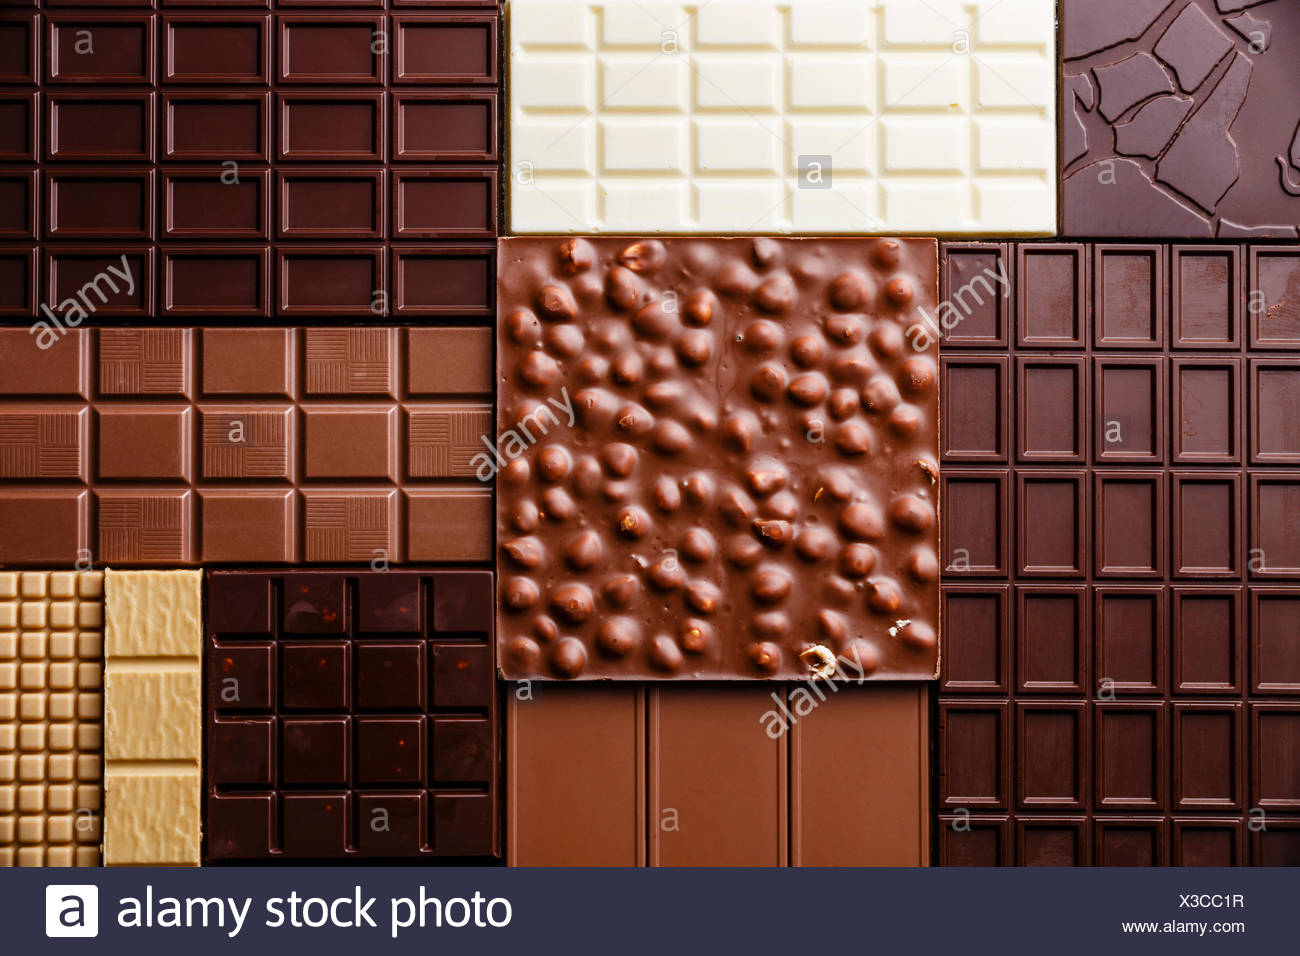 Chocolate bar assortment pattern background wallpaper - Stock Image